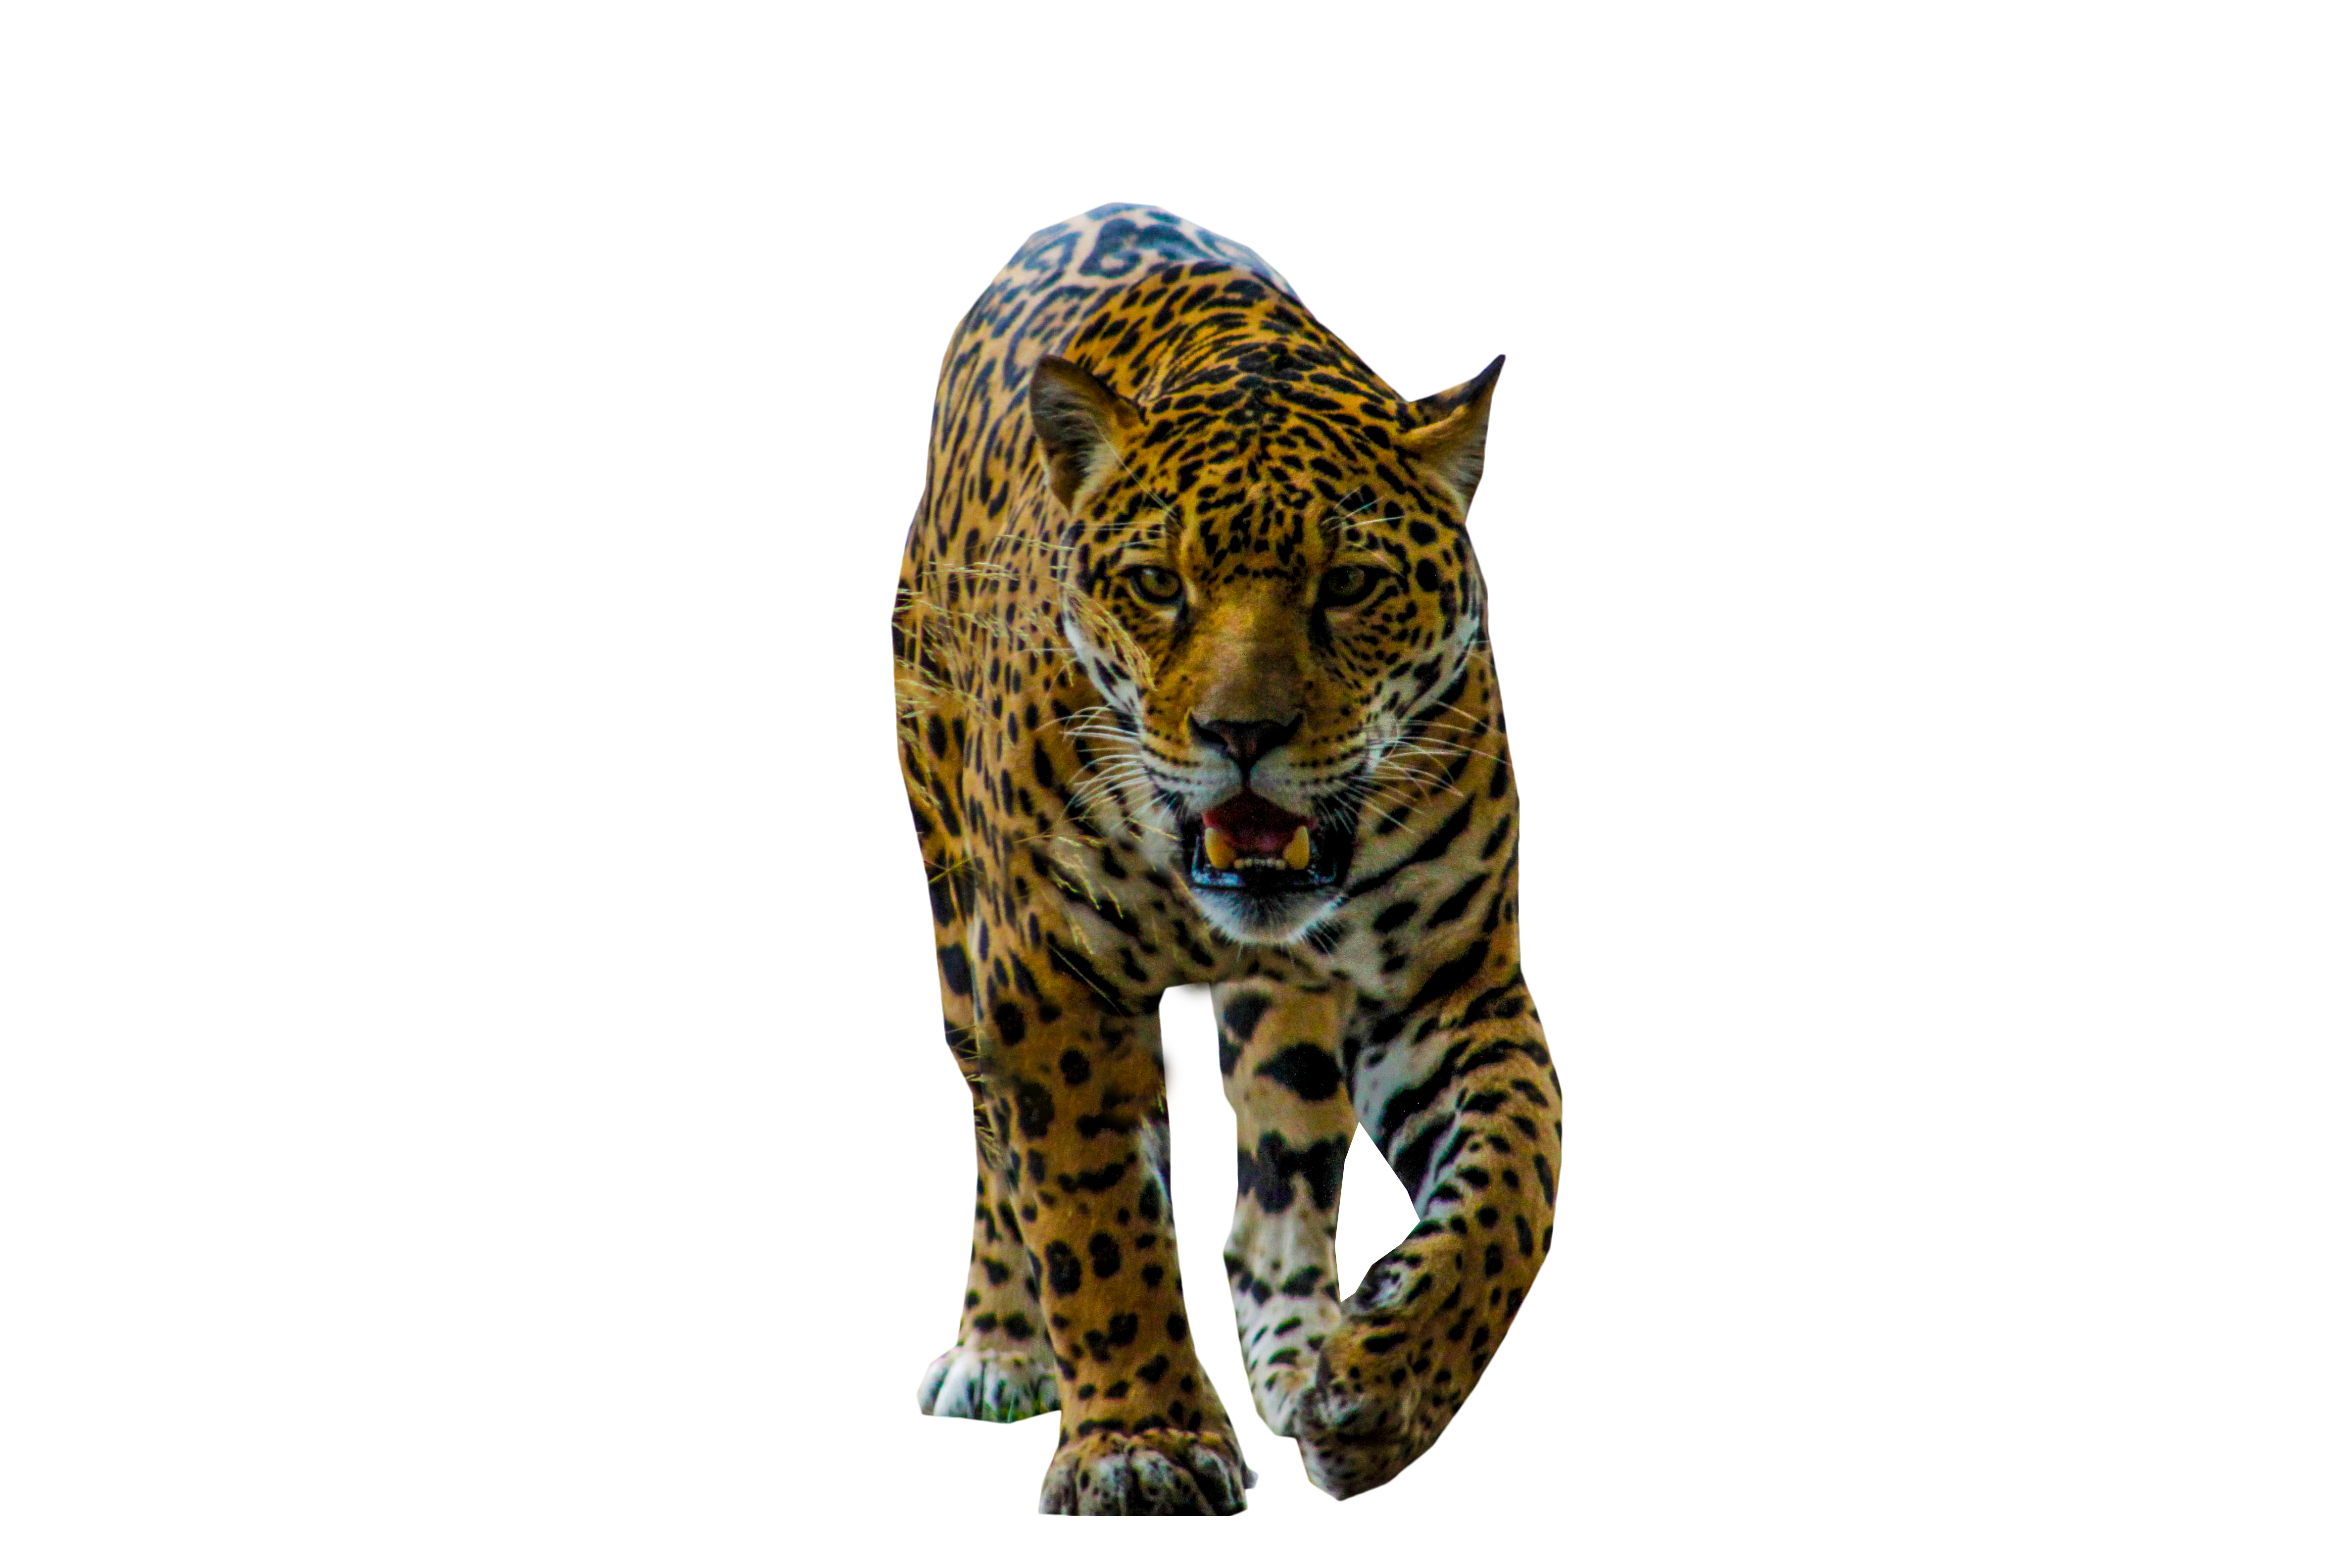 Panther walking png. Jaguar image purepng free